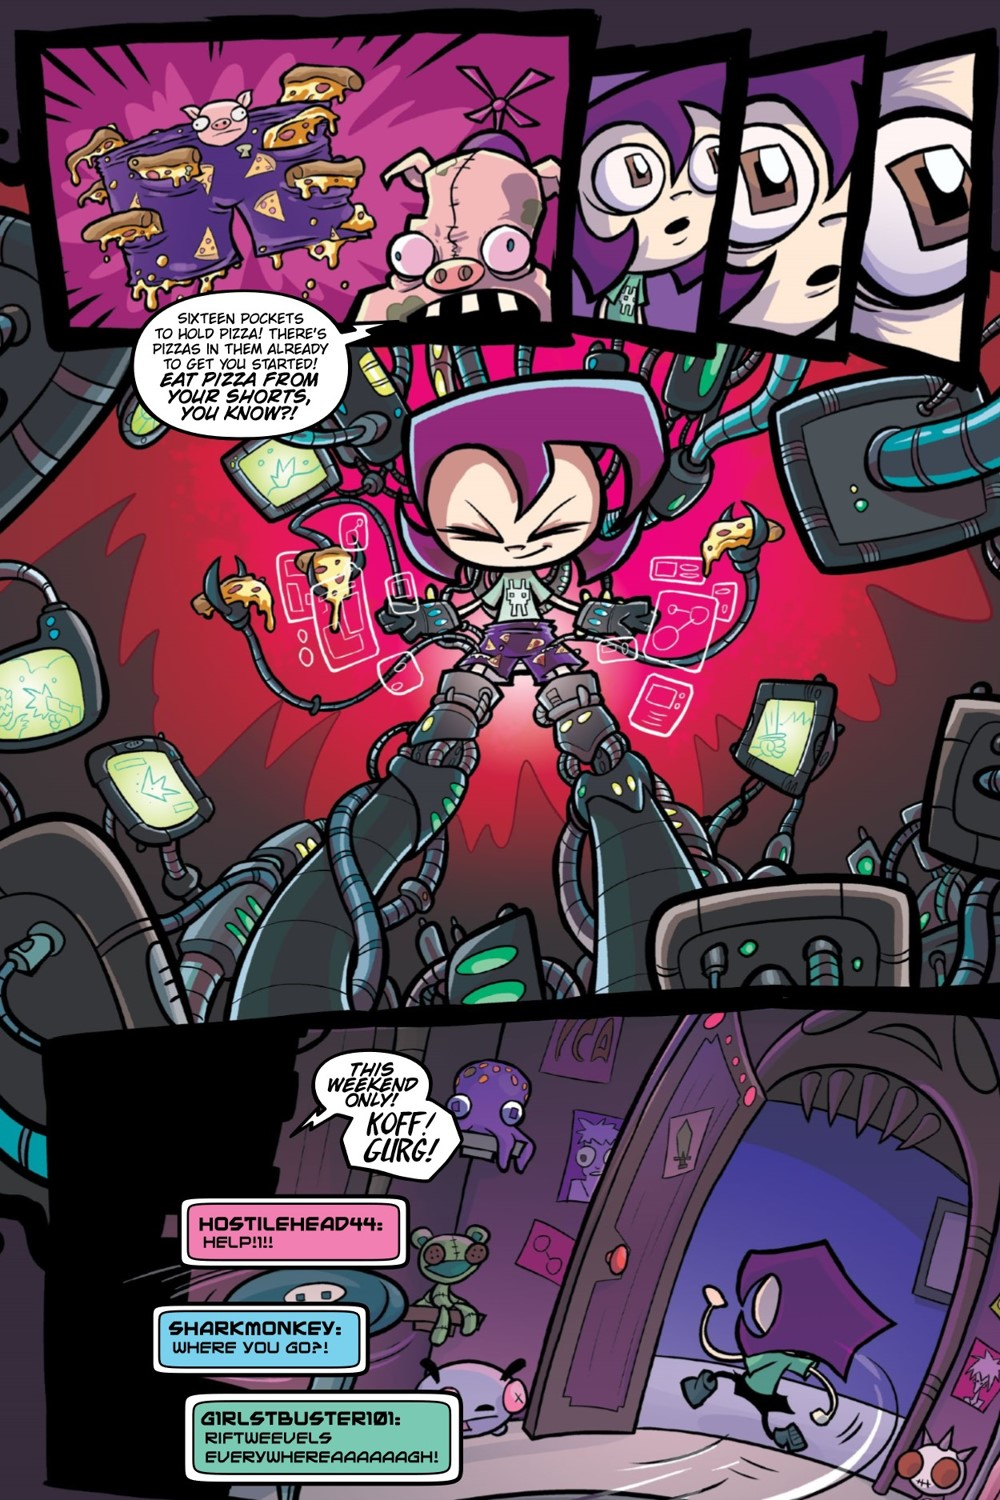 INVADERZIM-BEST-OF-CREATURES-REFERENCE-009 ComicList Previews: INVADER ZIM BEST OF CREATURES VOLUME 1 TP